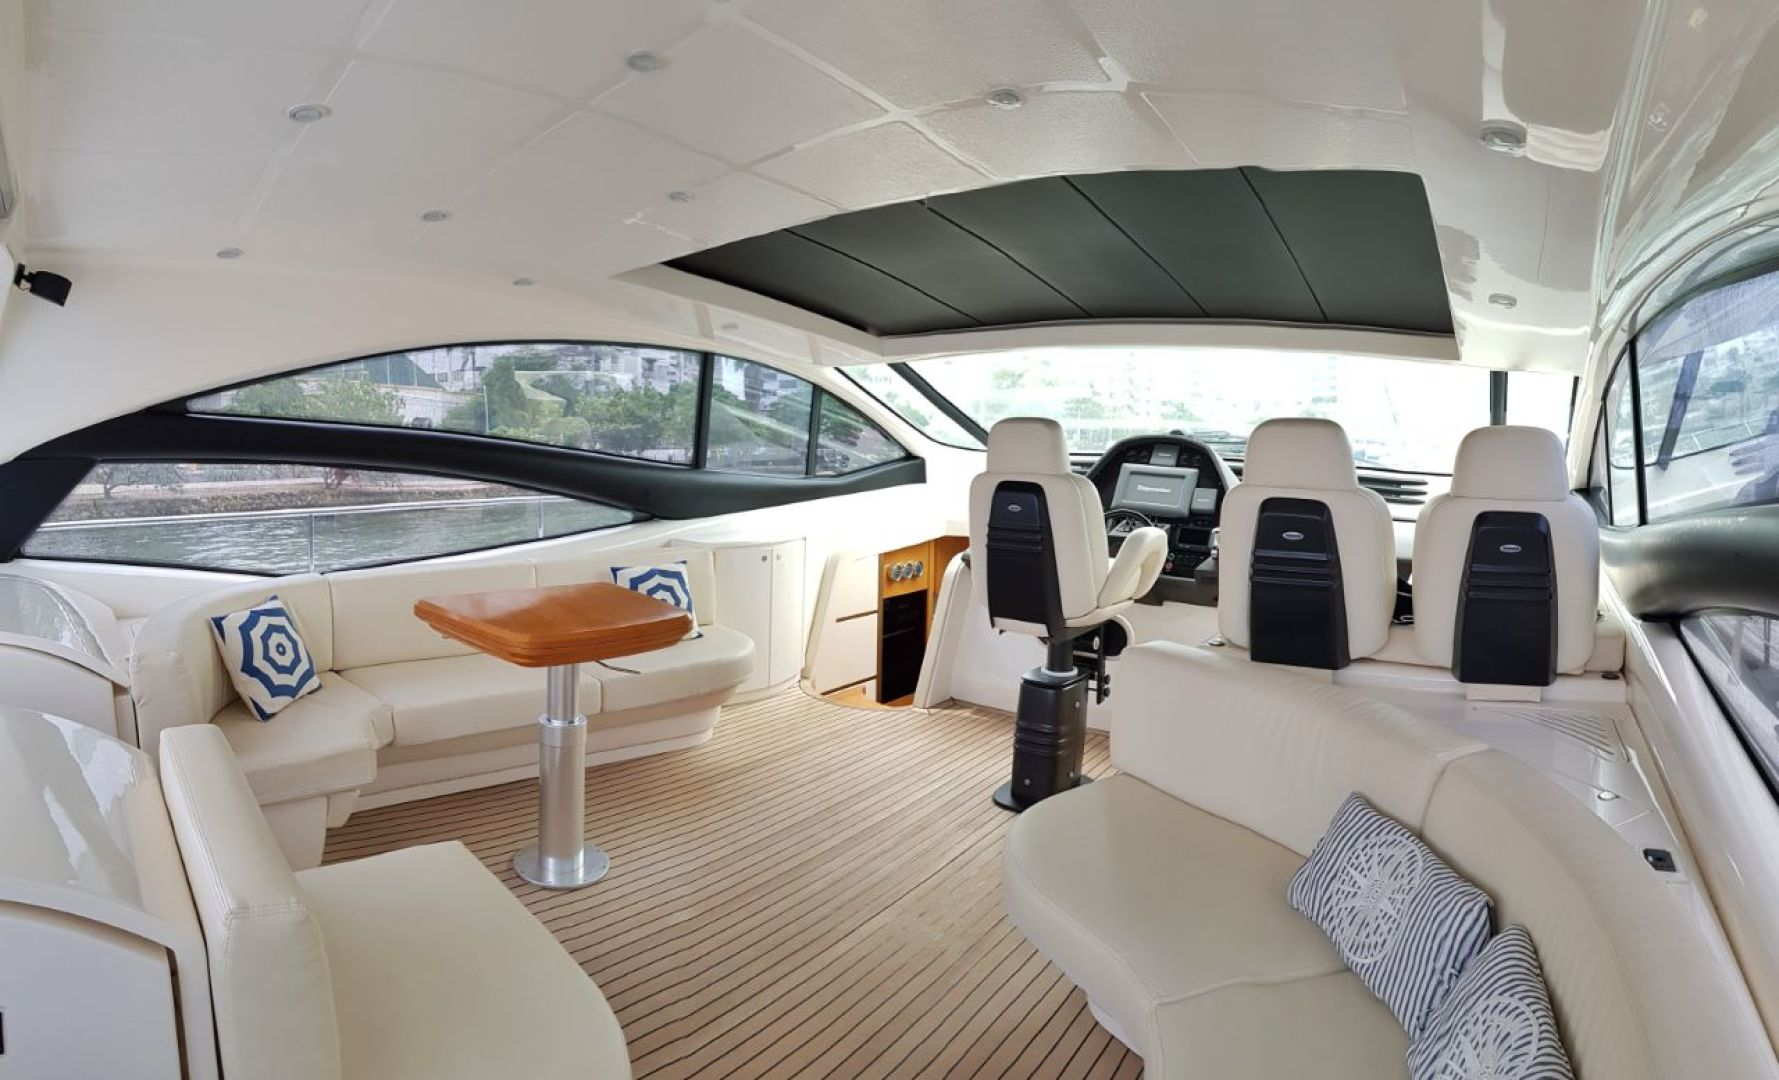 Pershing-62 2007 -Cancun-Mexico-2007 PERSHING 62 FOR SALE-1134393 | Thumbnail